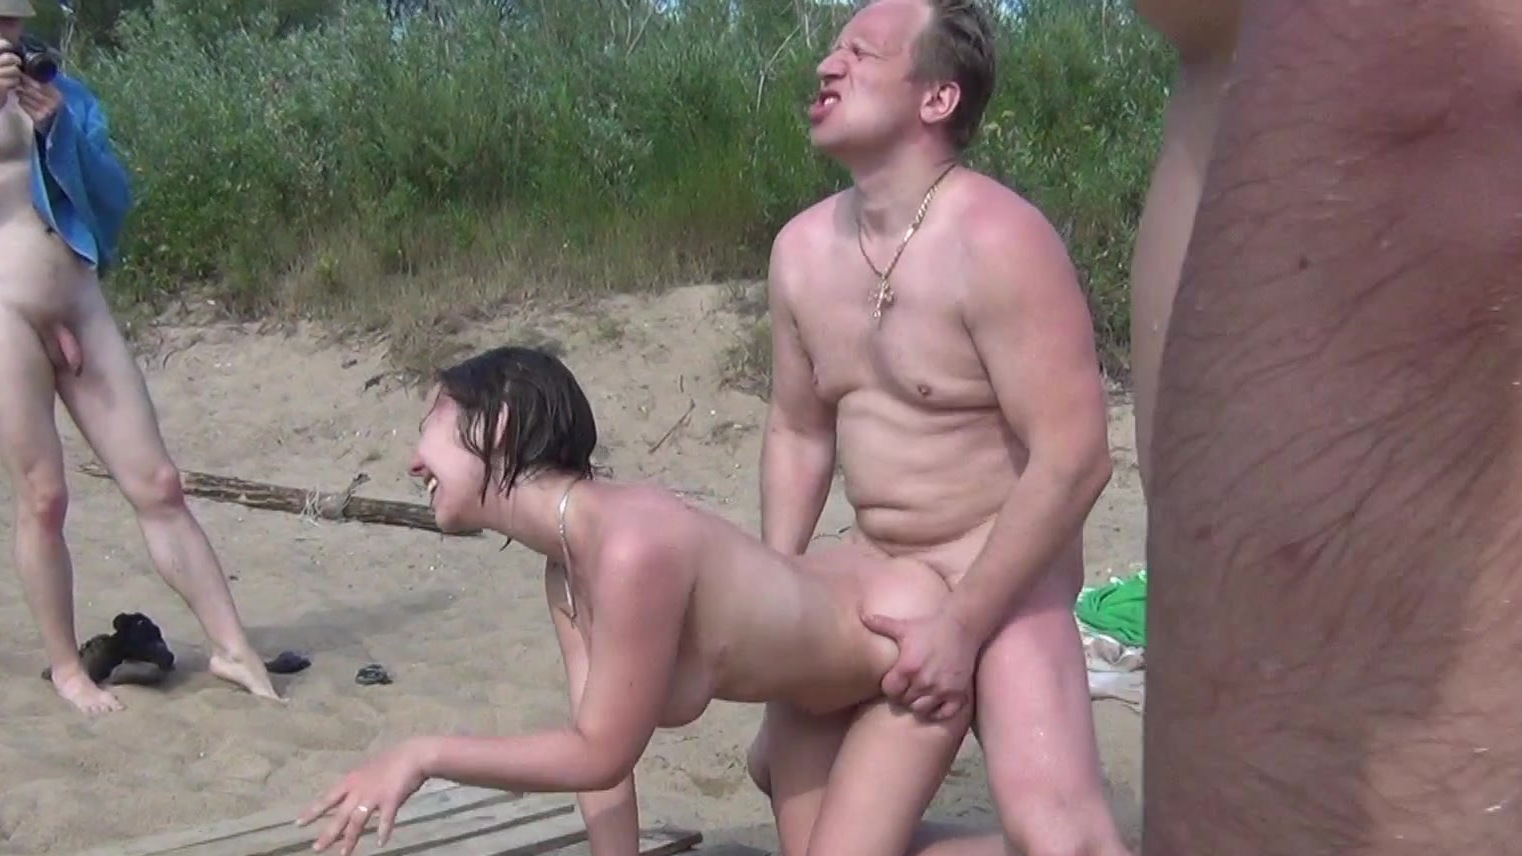 Spectacular blowjob then anal